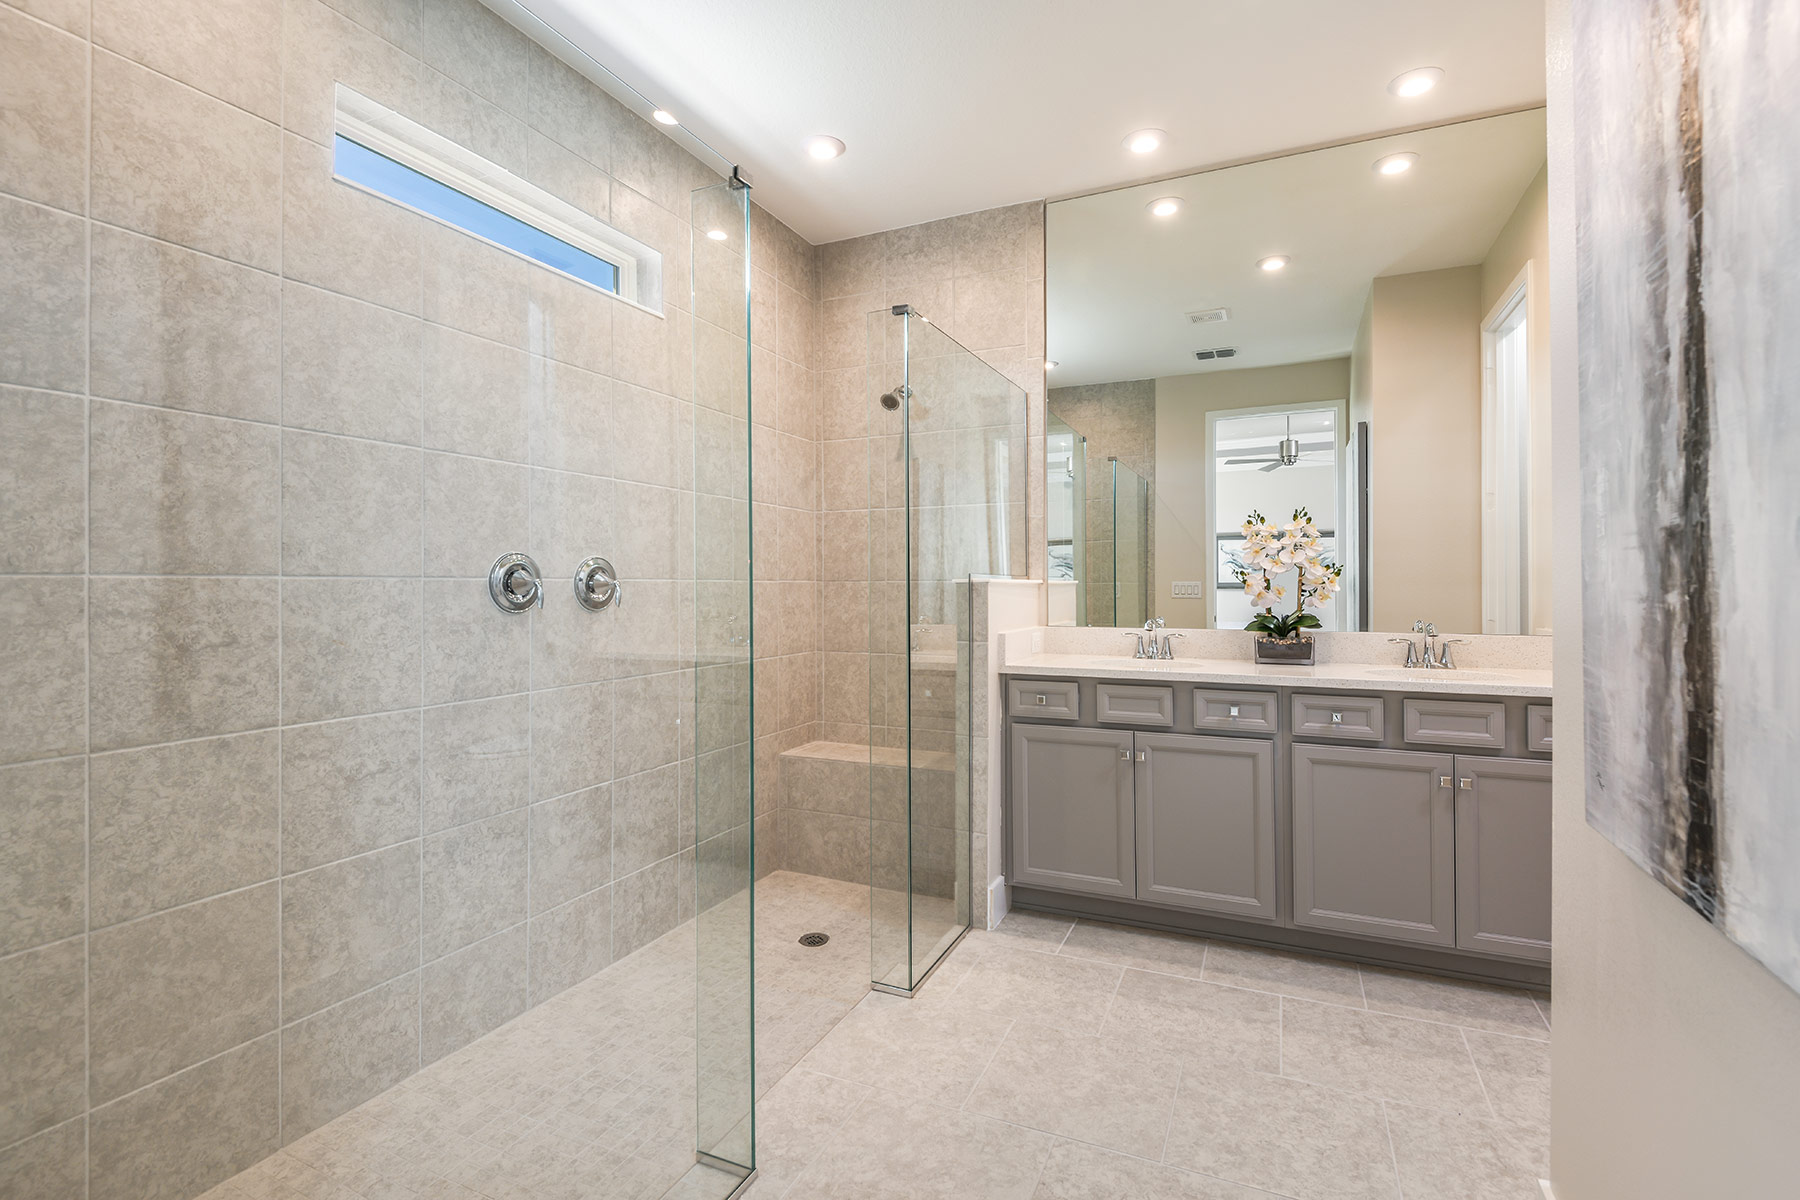 Dominica II Plan Bathroom_Master Bath at Wellen Park - Renaissance in Venice Florida by Mattamy Homes